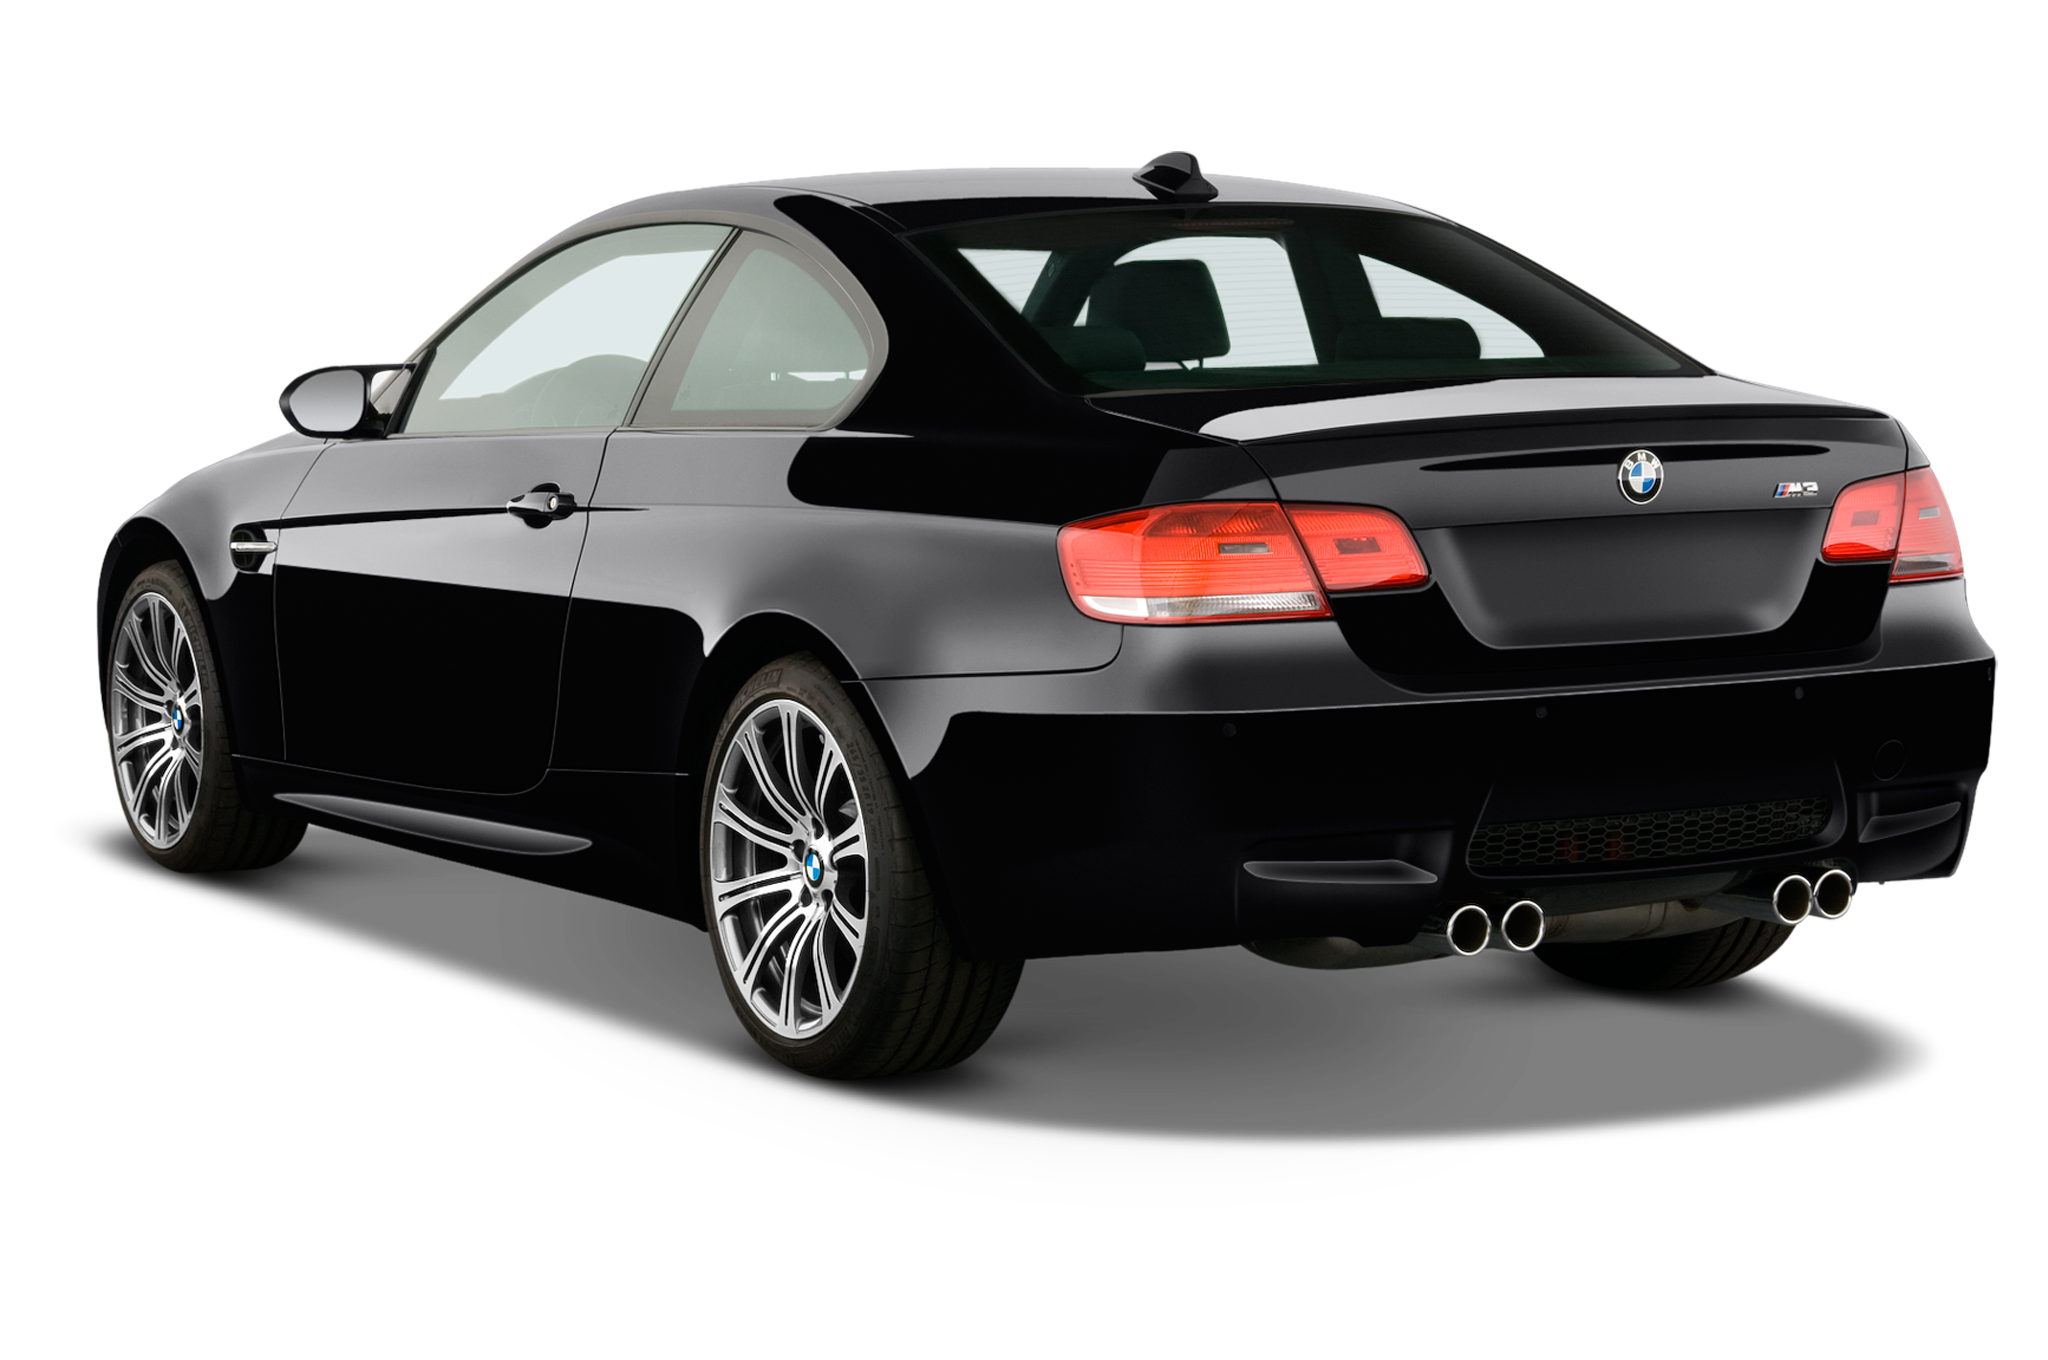 2010 bmw 335i coupe editor 39 s notebook automobile magazine. Black Bedroom Furniture Sets. Home Design Ideas